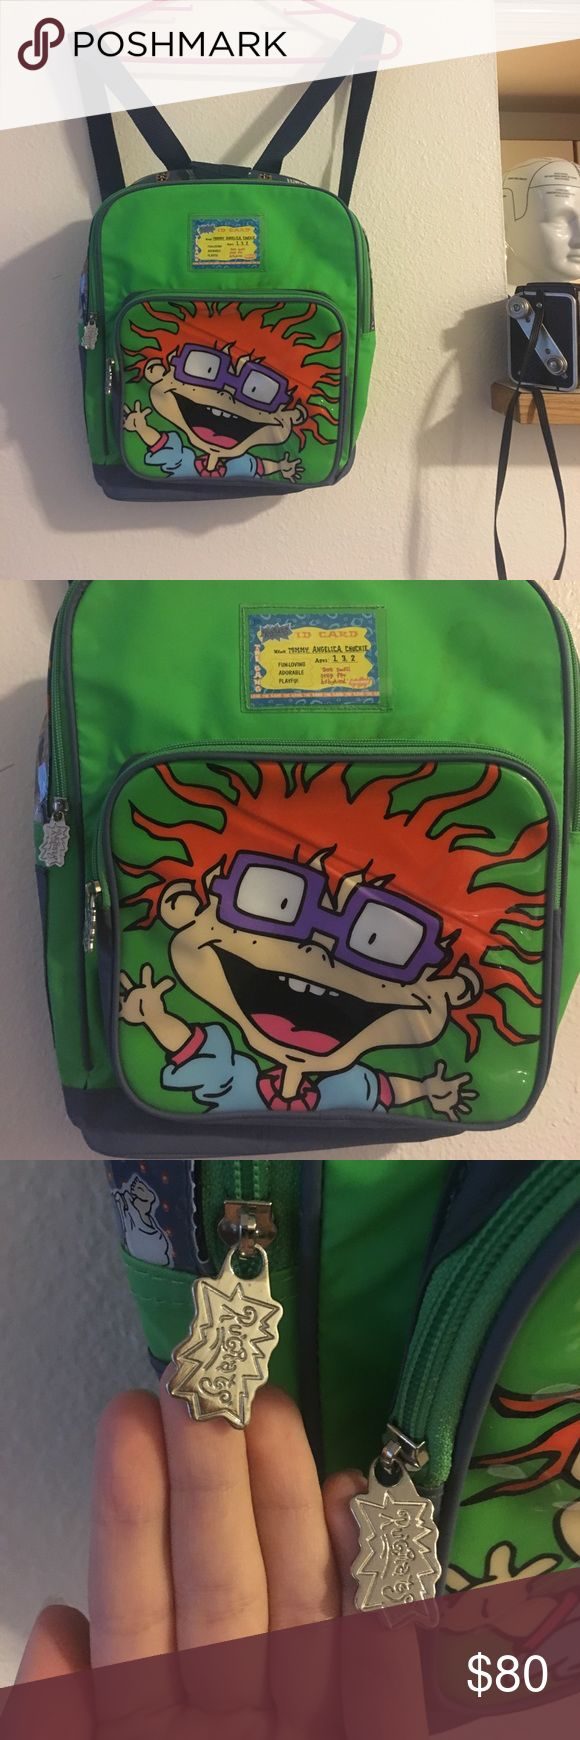 "90s nickelodeon rugrats chucky backpack RARE This backpack is SO COOL! It's one of my favorite finds. It is in Great condition. Almost appears unused. The zippers are in perfect working condition, the backpack is extremely clean inside but does have a faint stain on the front and it still has its original ""ID card) and the zippers has the rugrats logo on them. A picture of chucky on the front and a cool rugrats pattern/print on the top. It's a great vintage or collectors piece!Let me know if…"